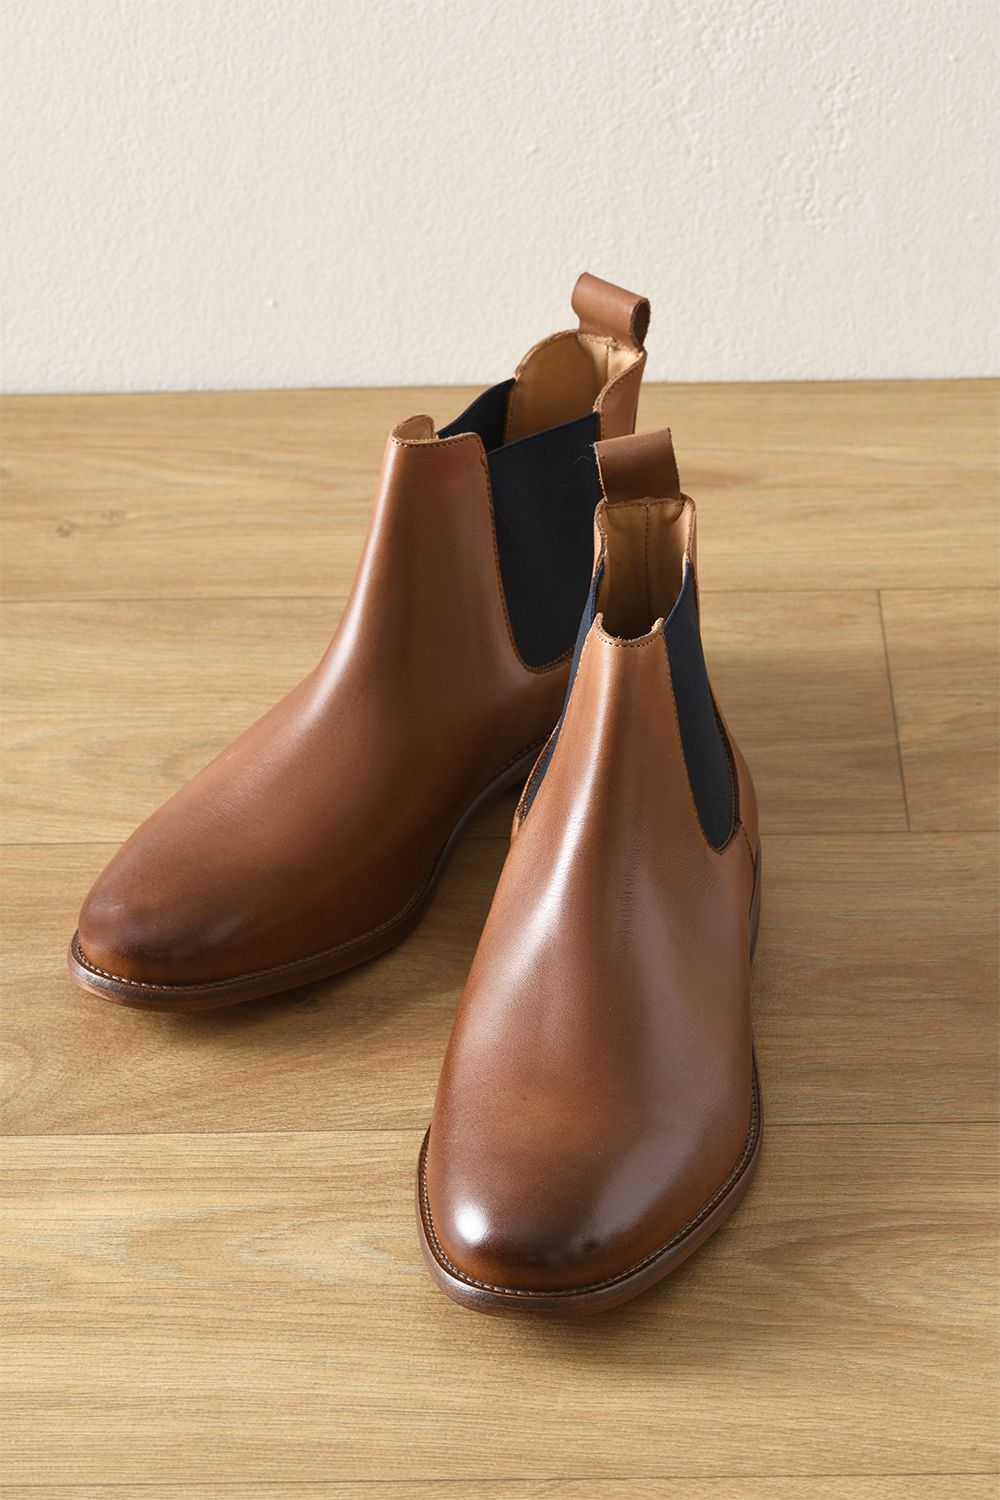 Chelsea Boots Cuir Homme Chataigne Patine Fisherton Chaussures Homme Boots Homme Cuir Chaussure Homme Luxe